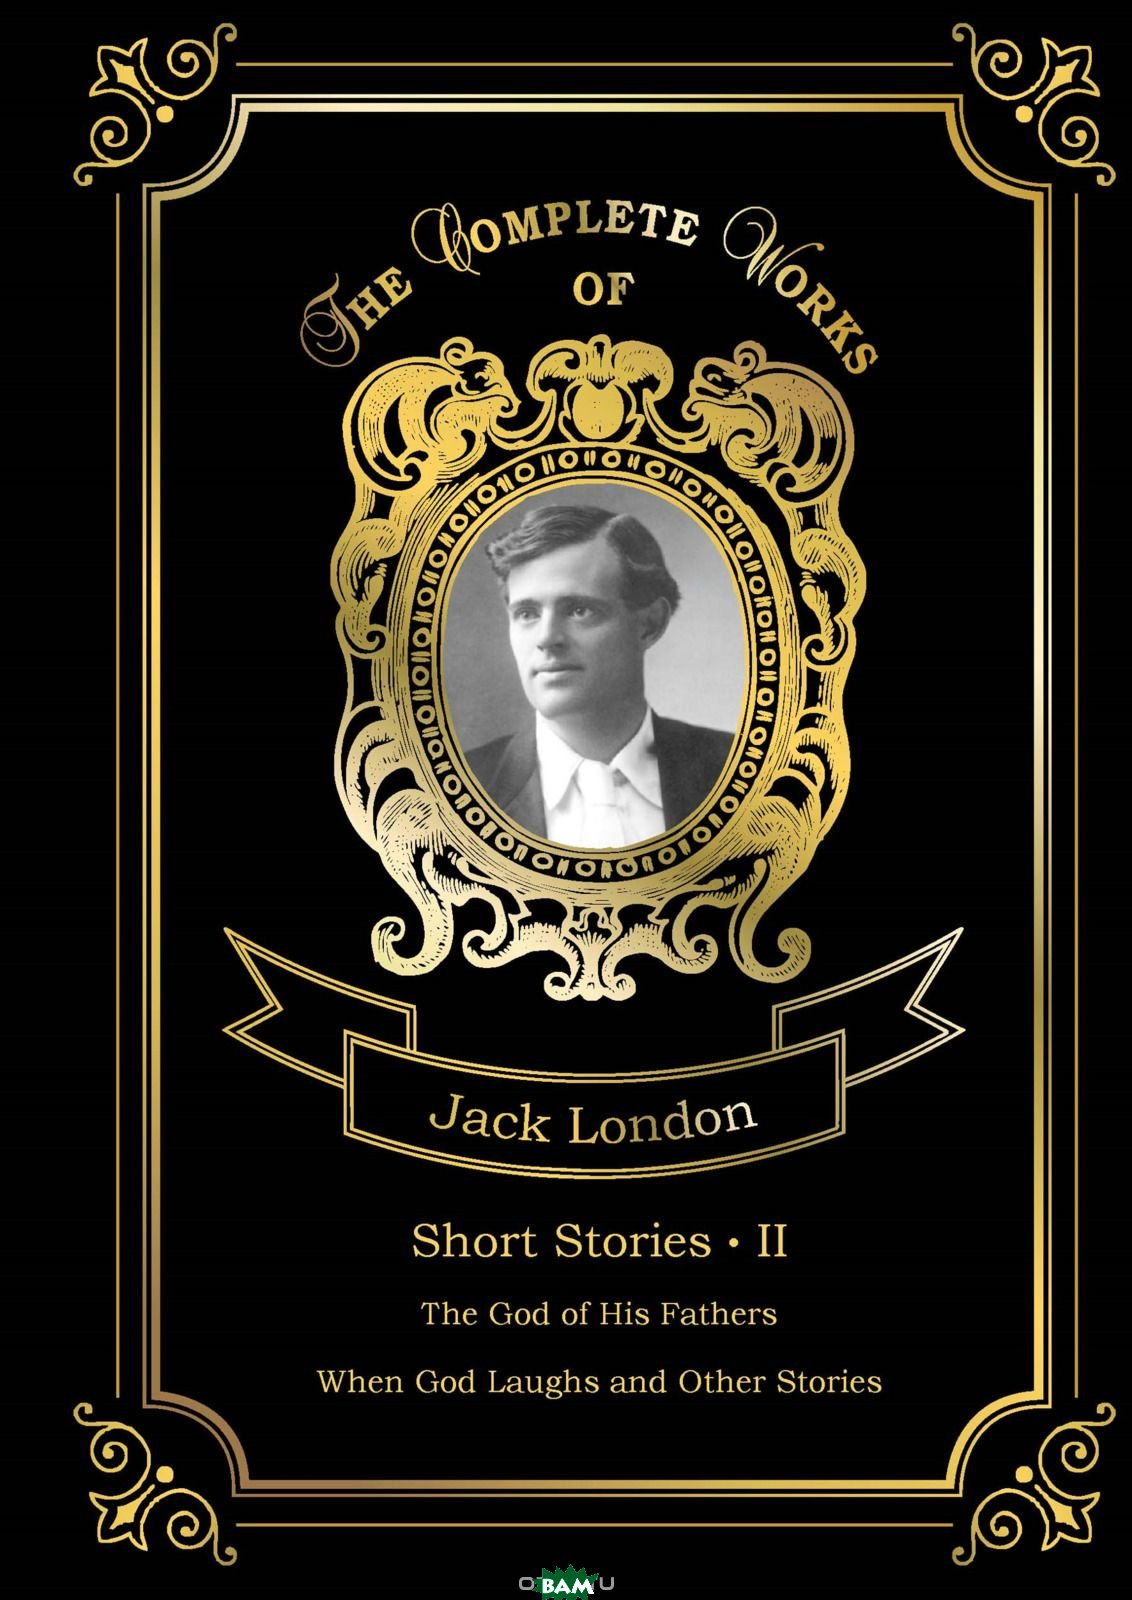 Short Stories. Part 2: The God of His Fathers; When God Laughs and Other Stories. Volume 21